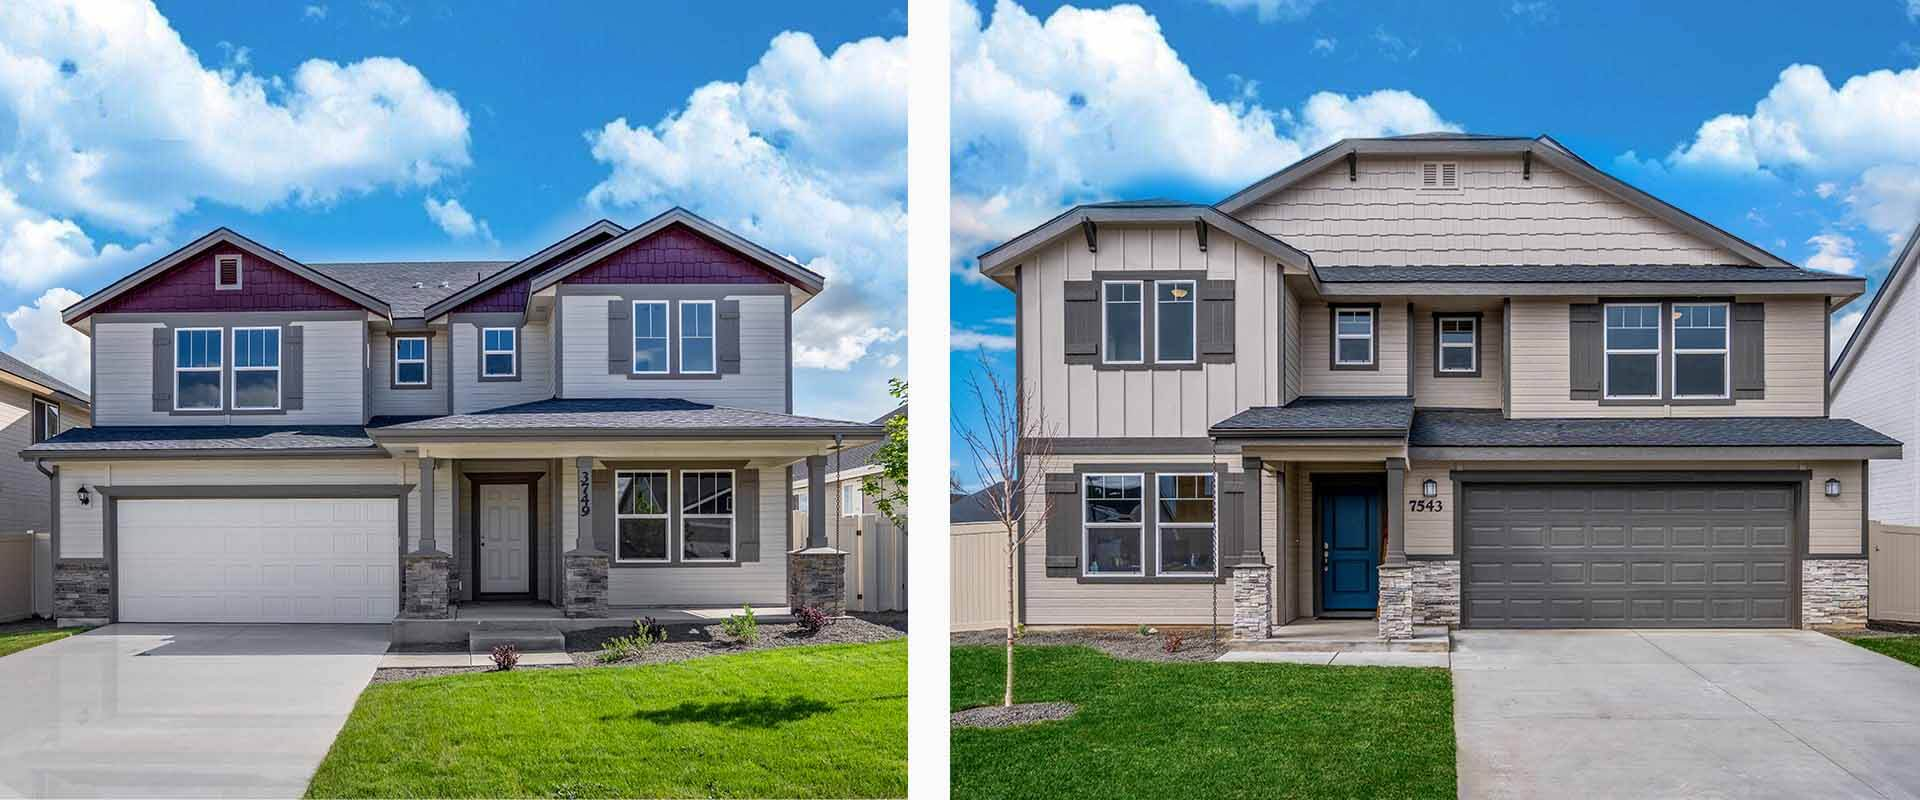 Yosemite_Hubble_Homes_New_Homes_Boise copy.jpg